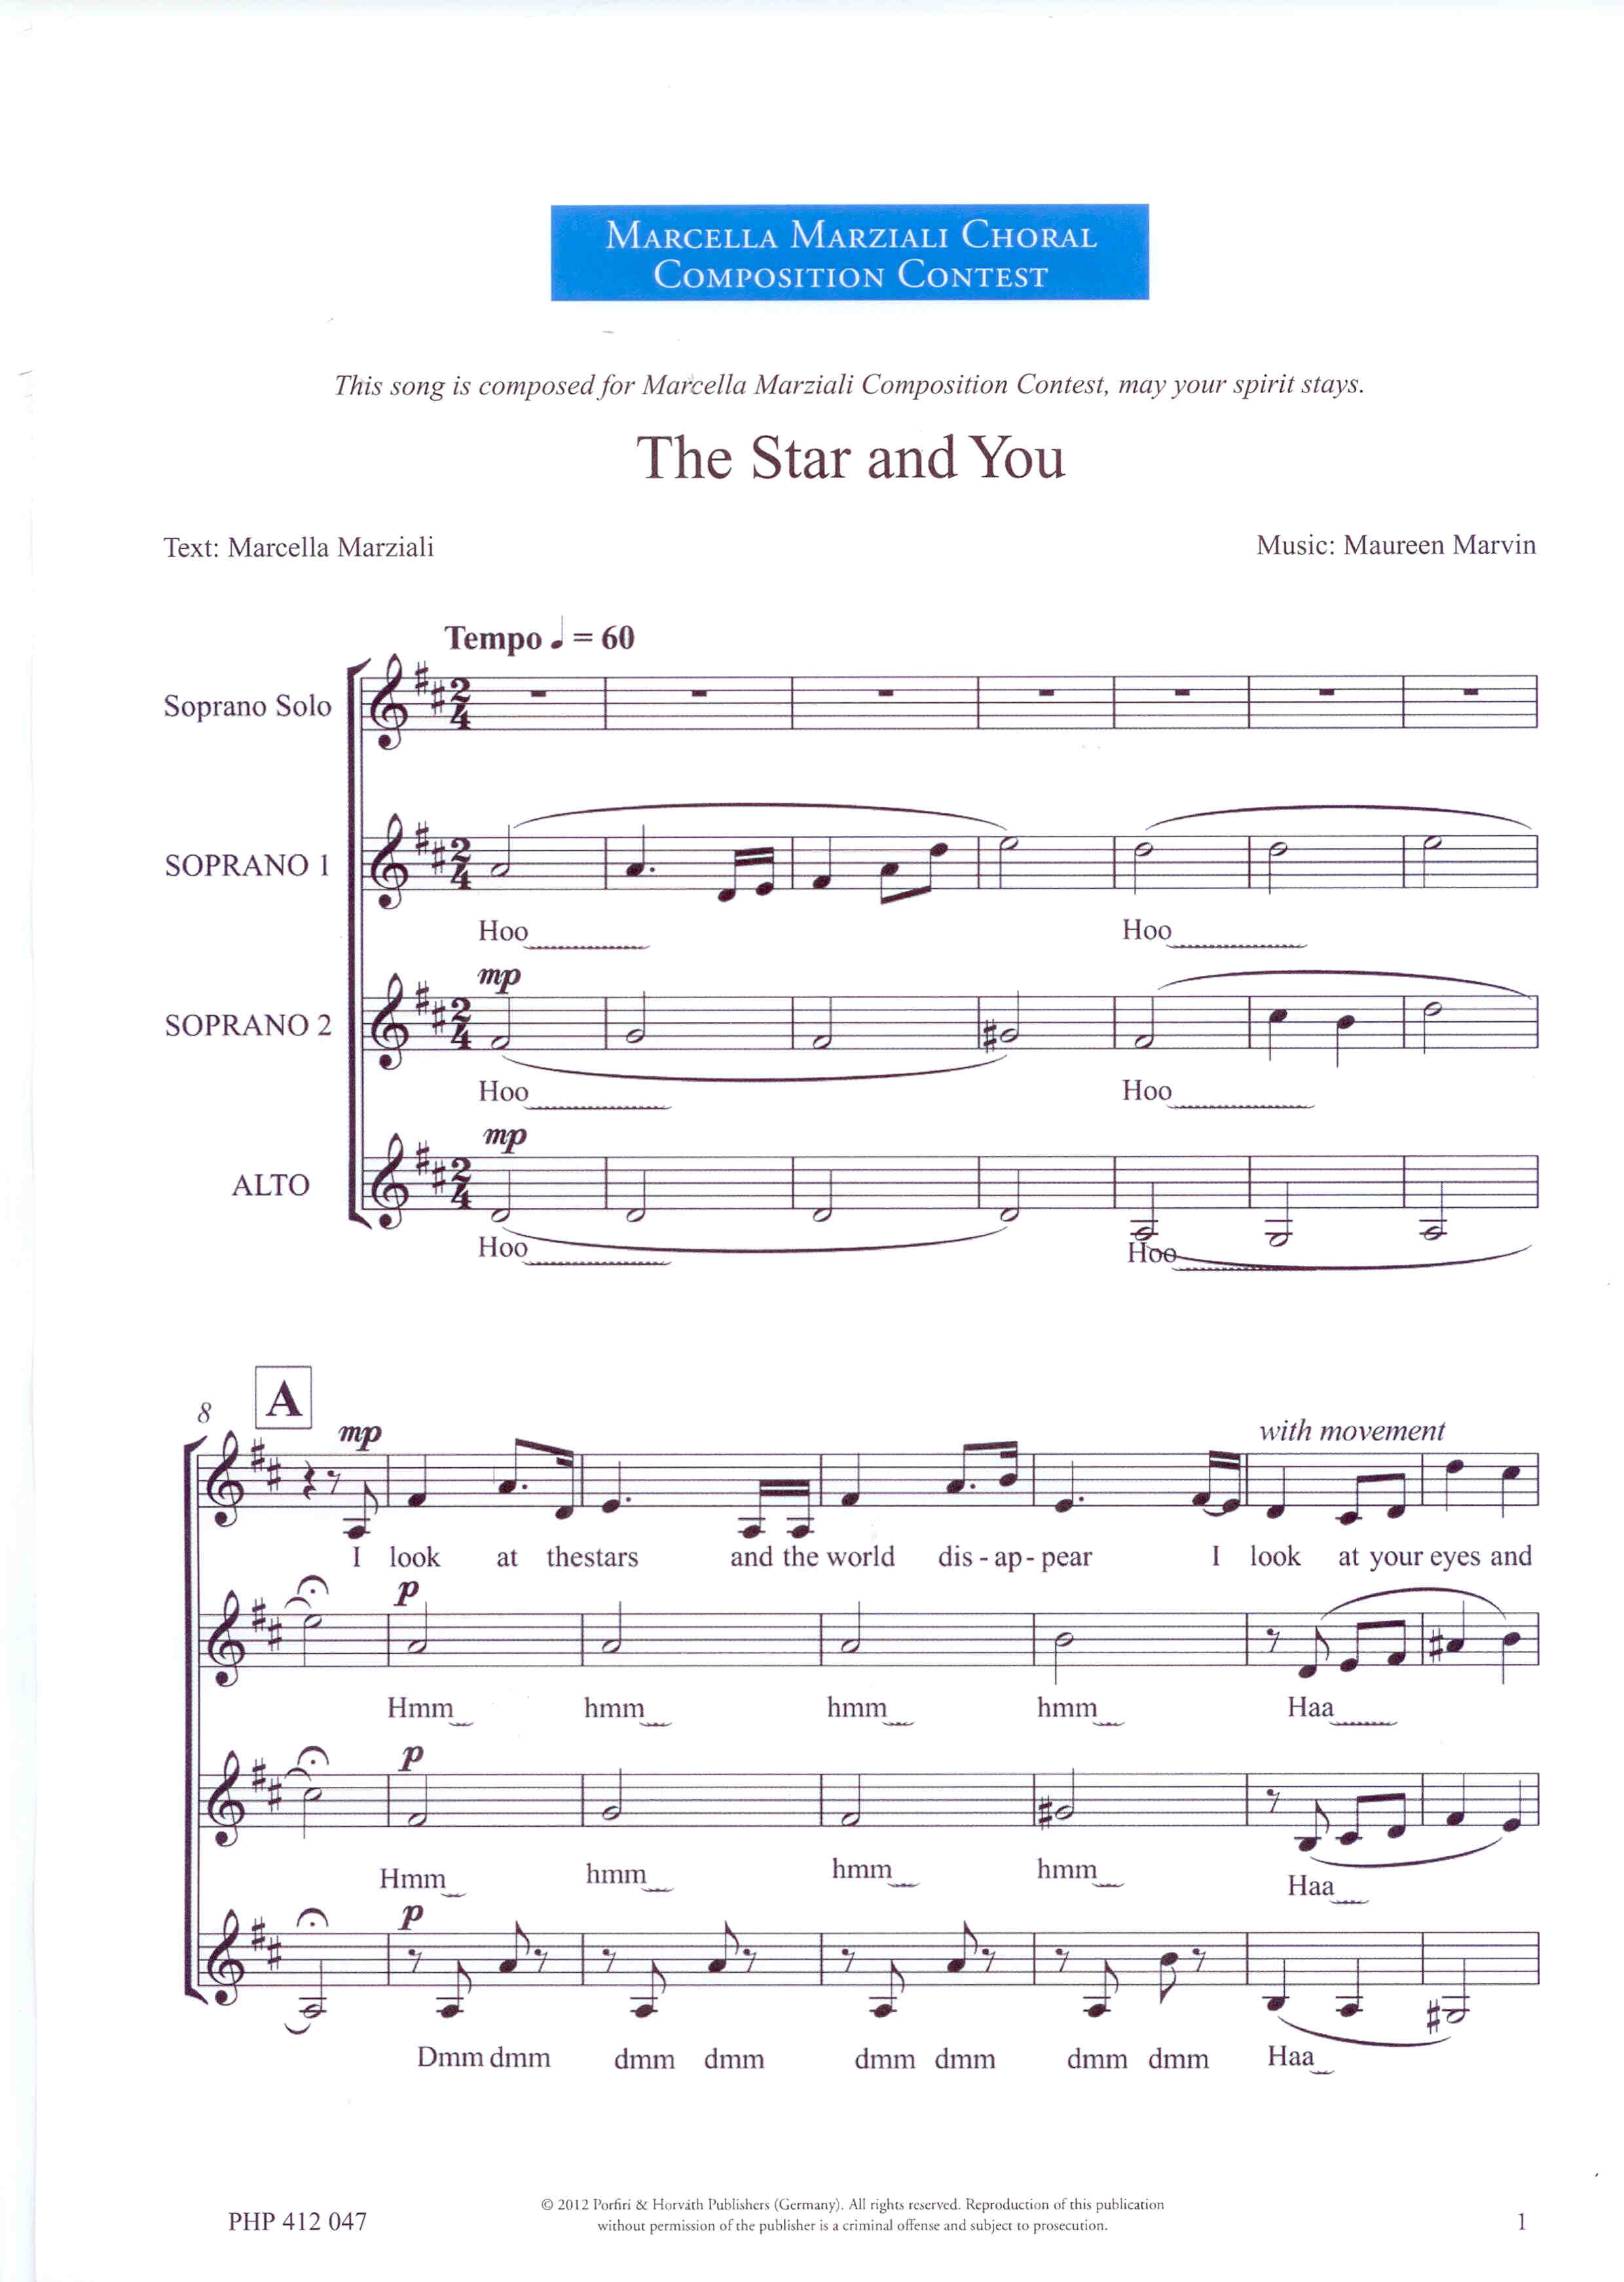 The Star and You